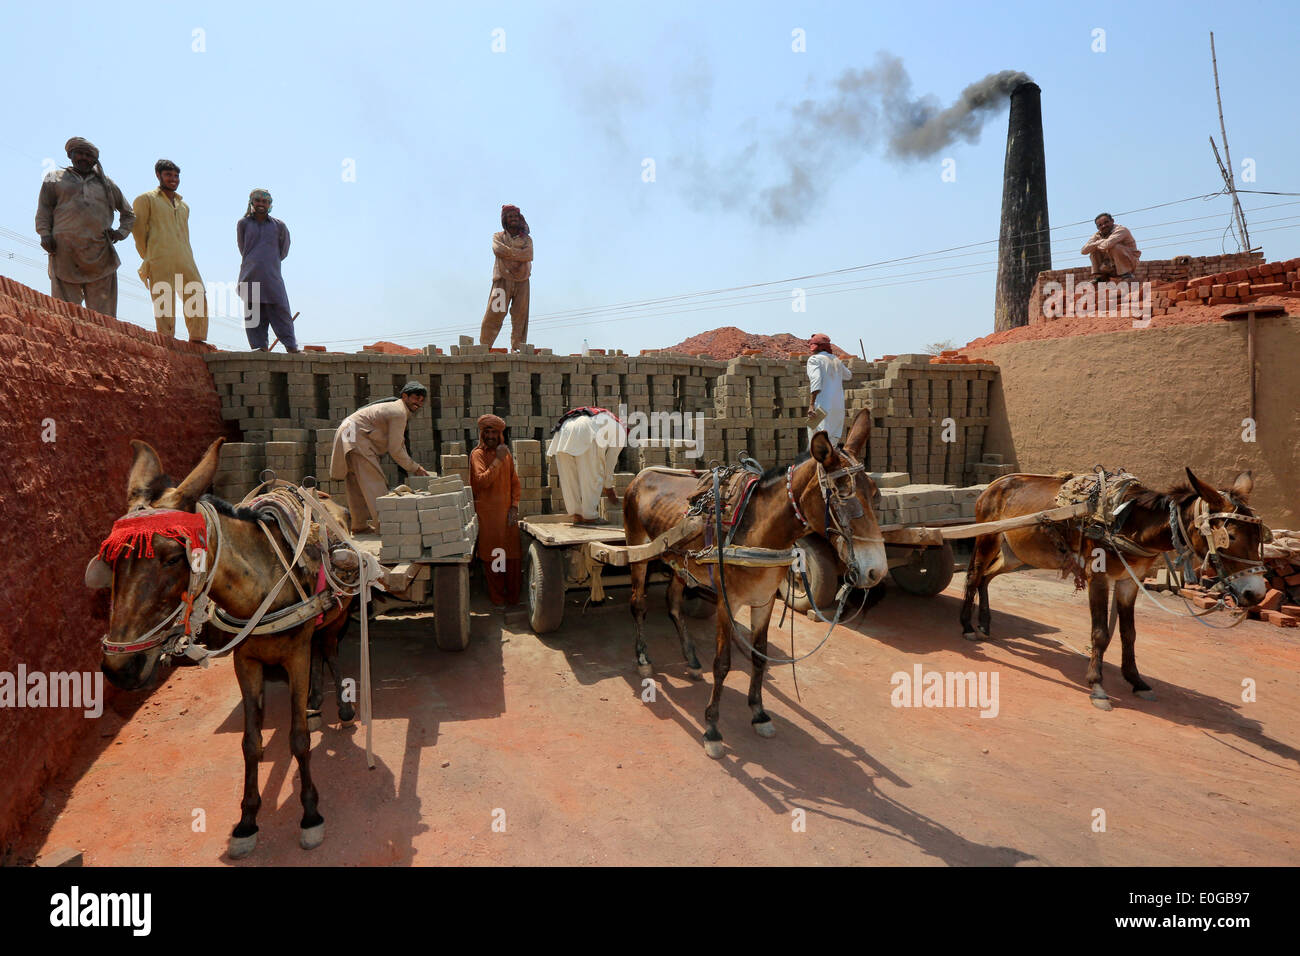 Donkey carts getting unloaded of bricks in a brick kiln of a brick factory, Lahore, Punjab, Pakistan, Asia - Stock Image